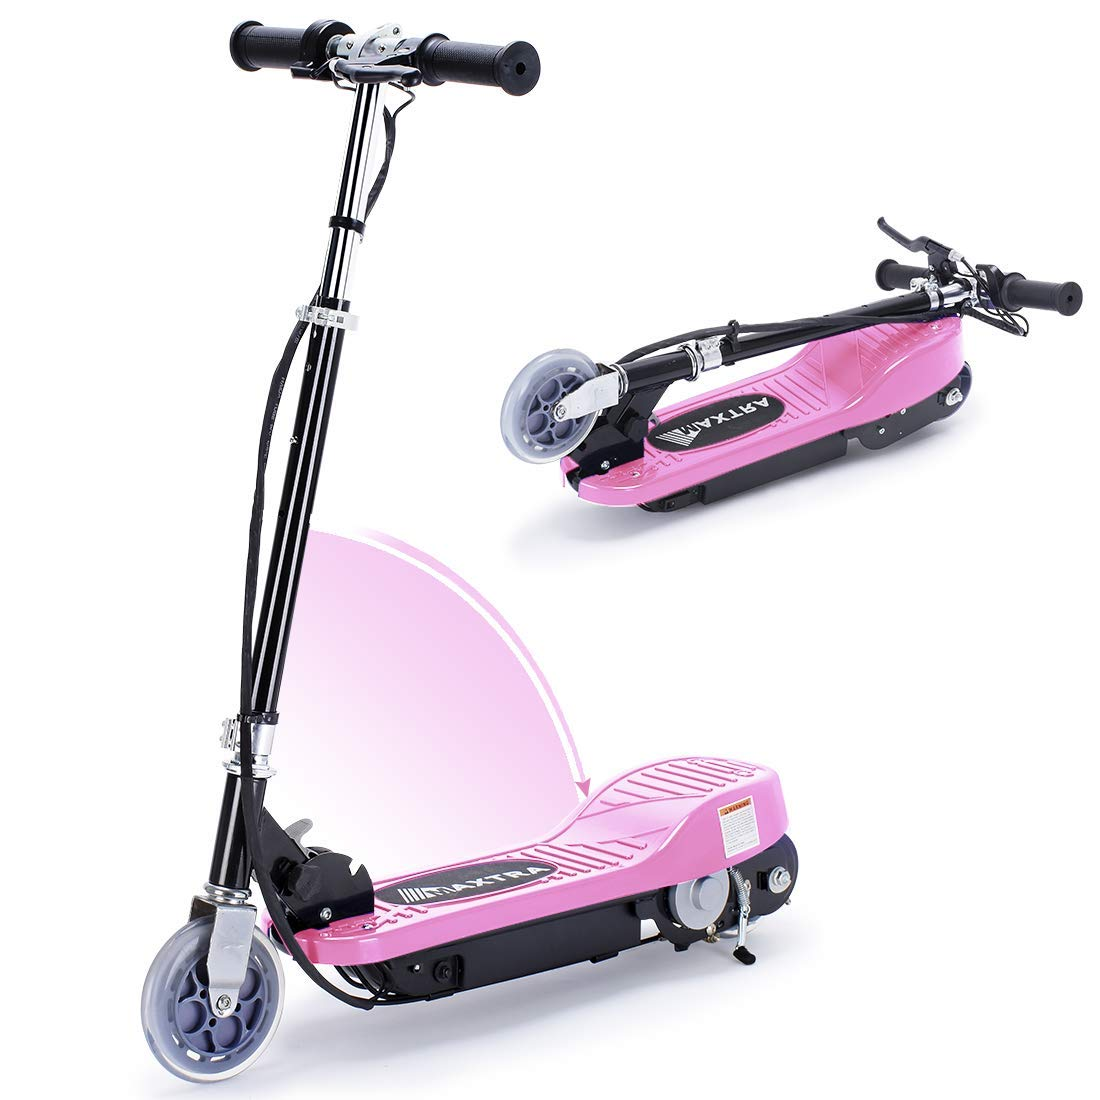 Overwhelming Upgrade E100 Adjustable Handlebar Height Folding Electric Scooter for Kids, 160LBS Max Weight Capacity Motorized Scooters, up to 10mph - Pink by Overwhelming